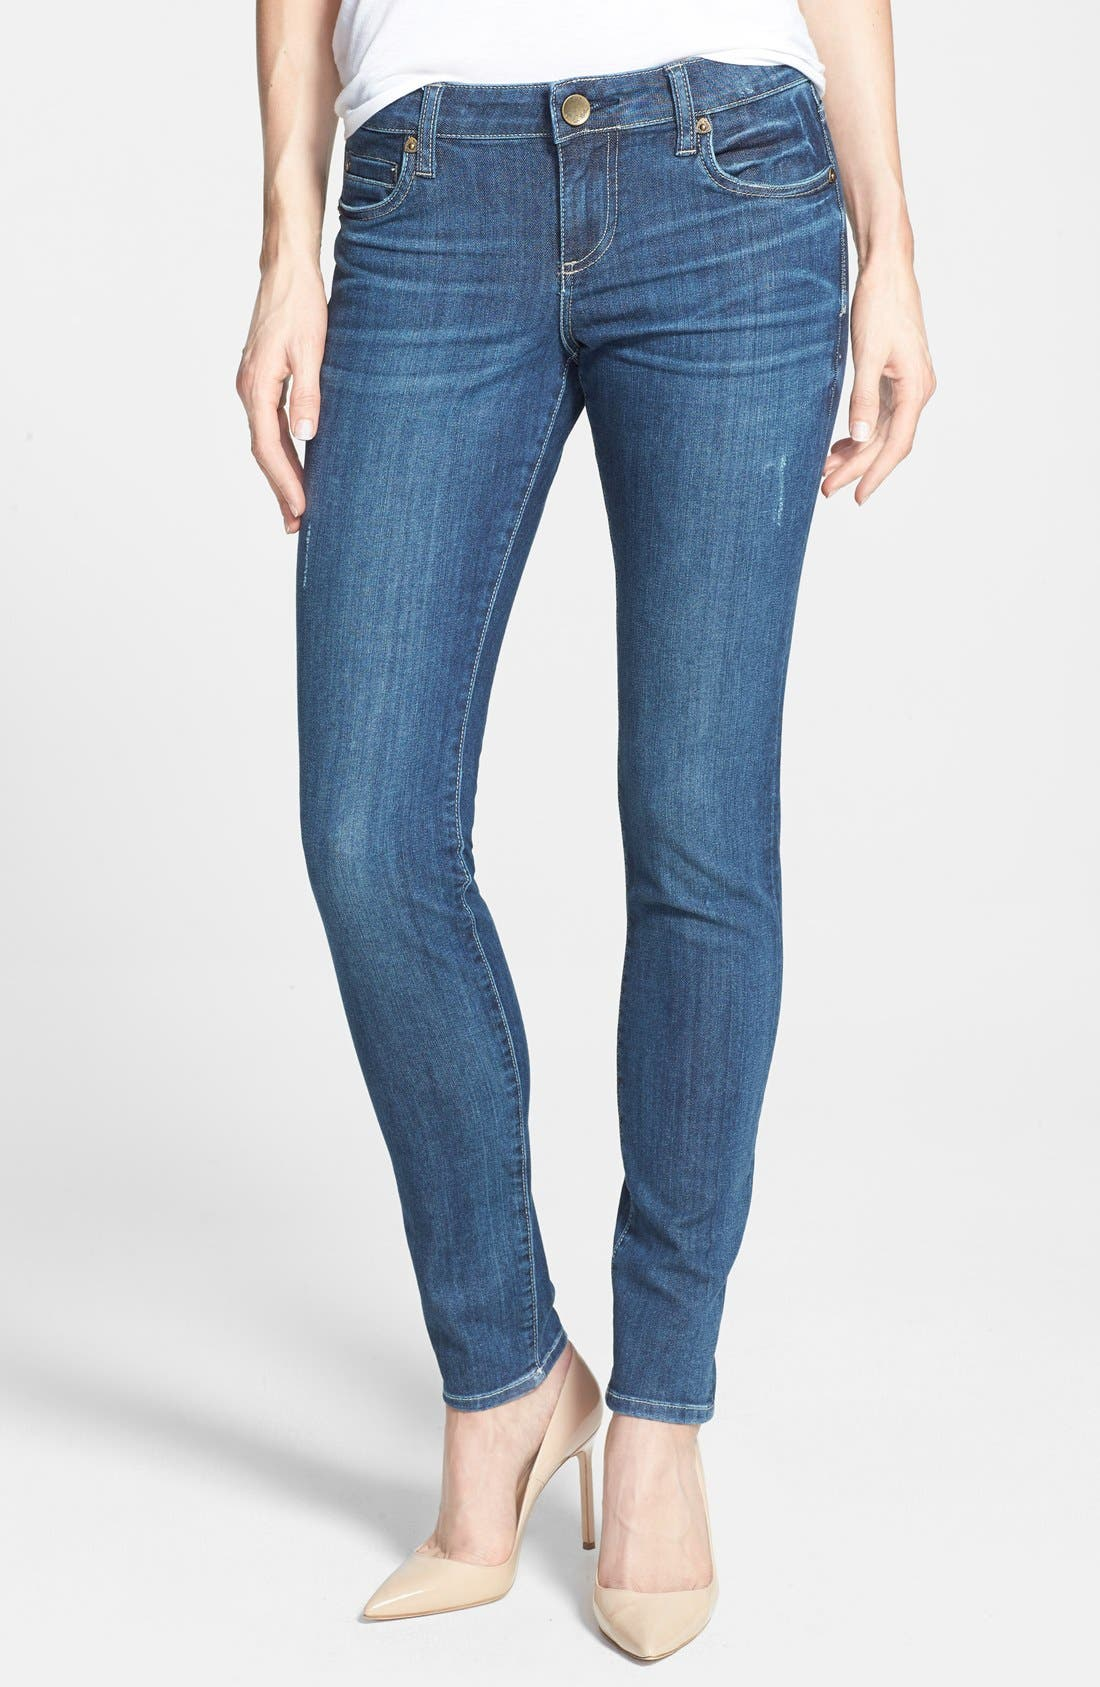 Alternate Image 1 Selected - KUT from the Kloth 'Mia' Stretch Skinny Jeans (Effect) (Regular & Petite)